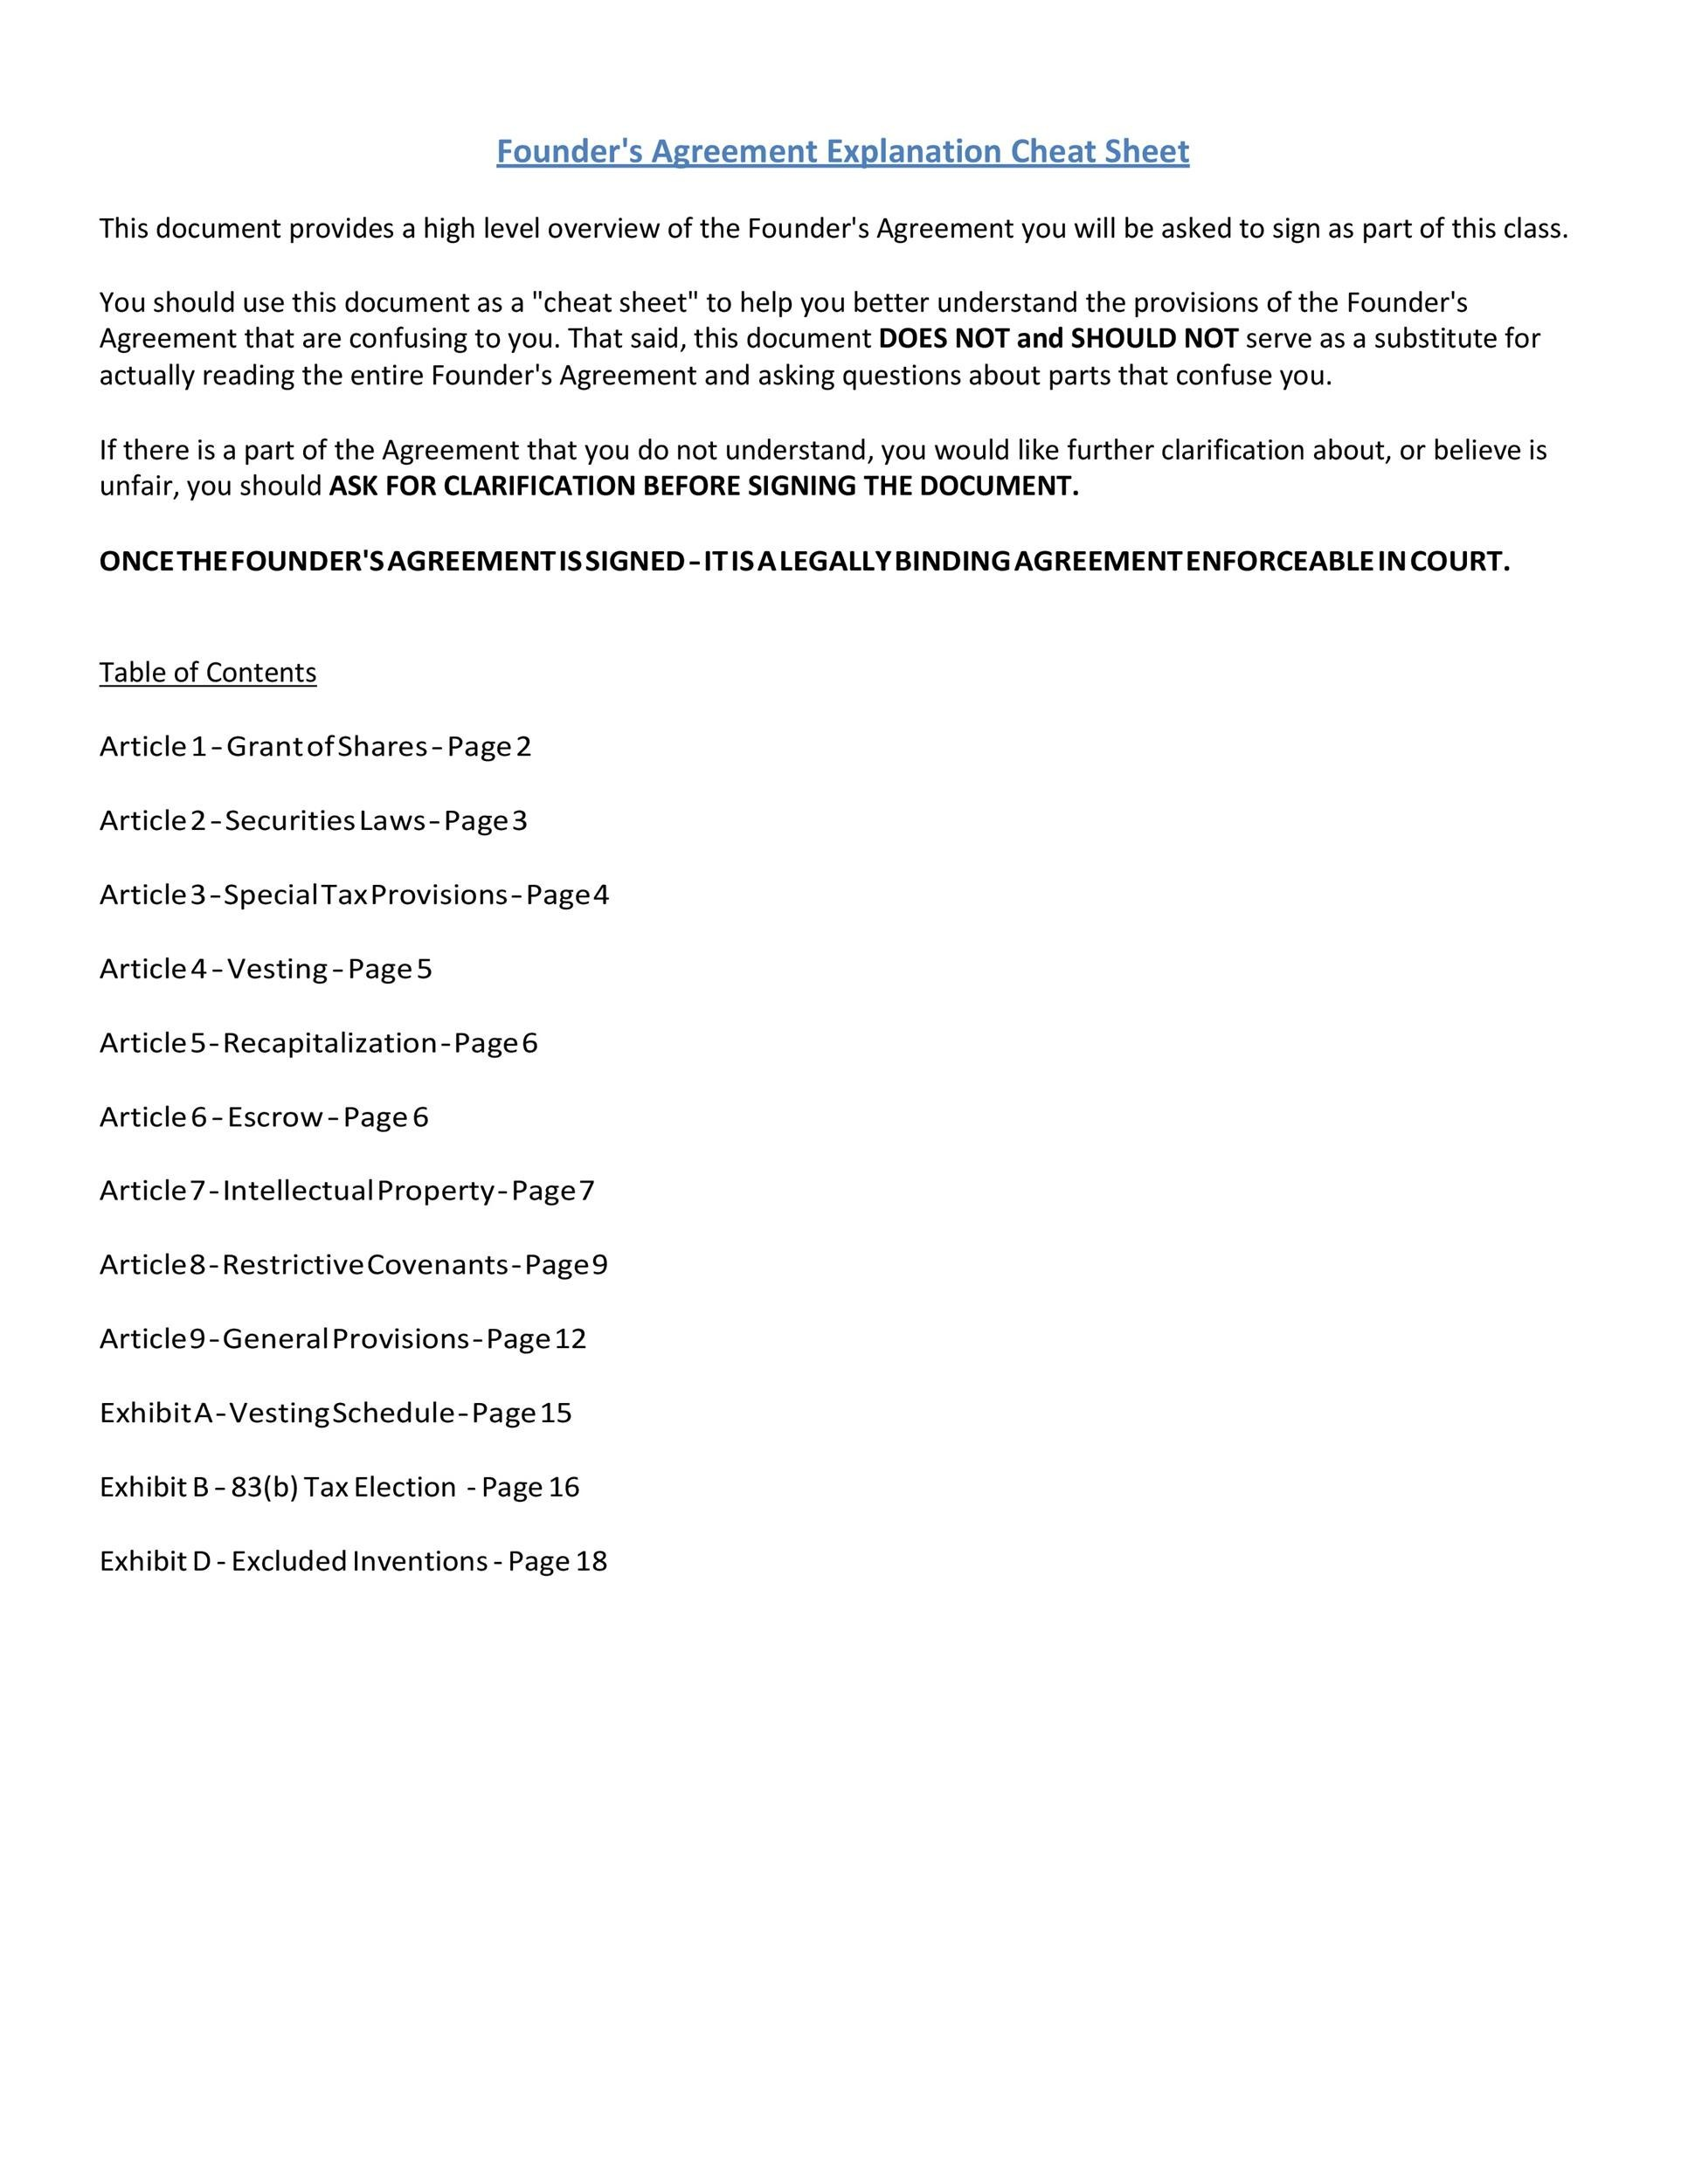 Free founders agreement 11